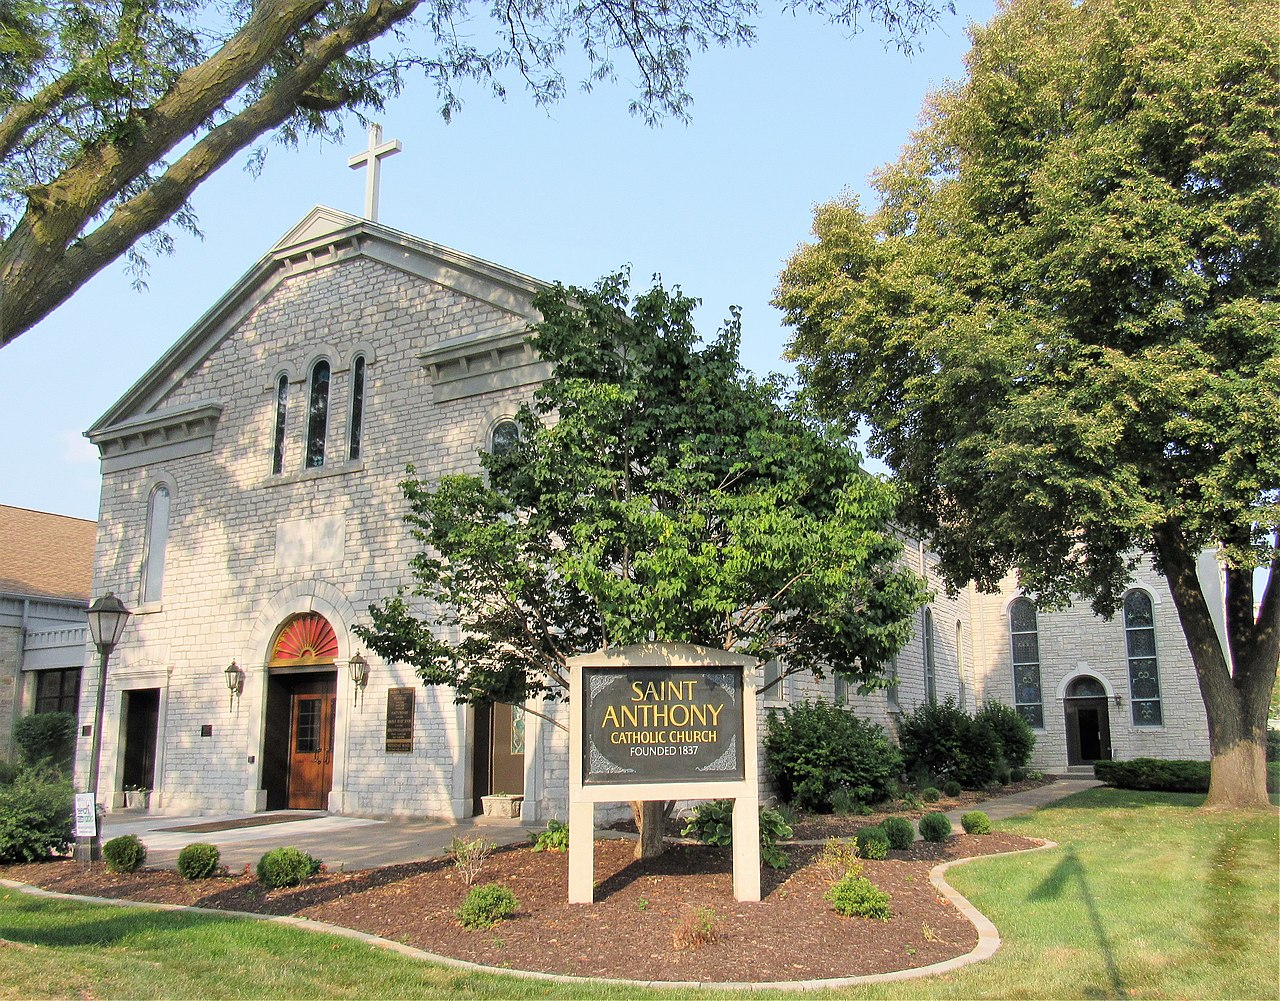 St. Anthony's Catholic Church is home to the second oldest Catholic congregation in the state.